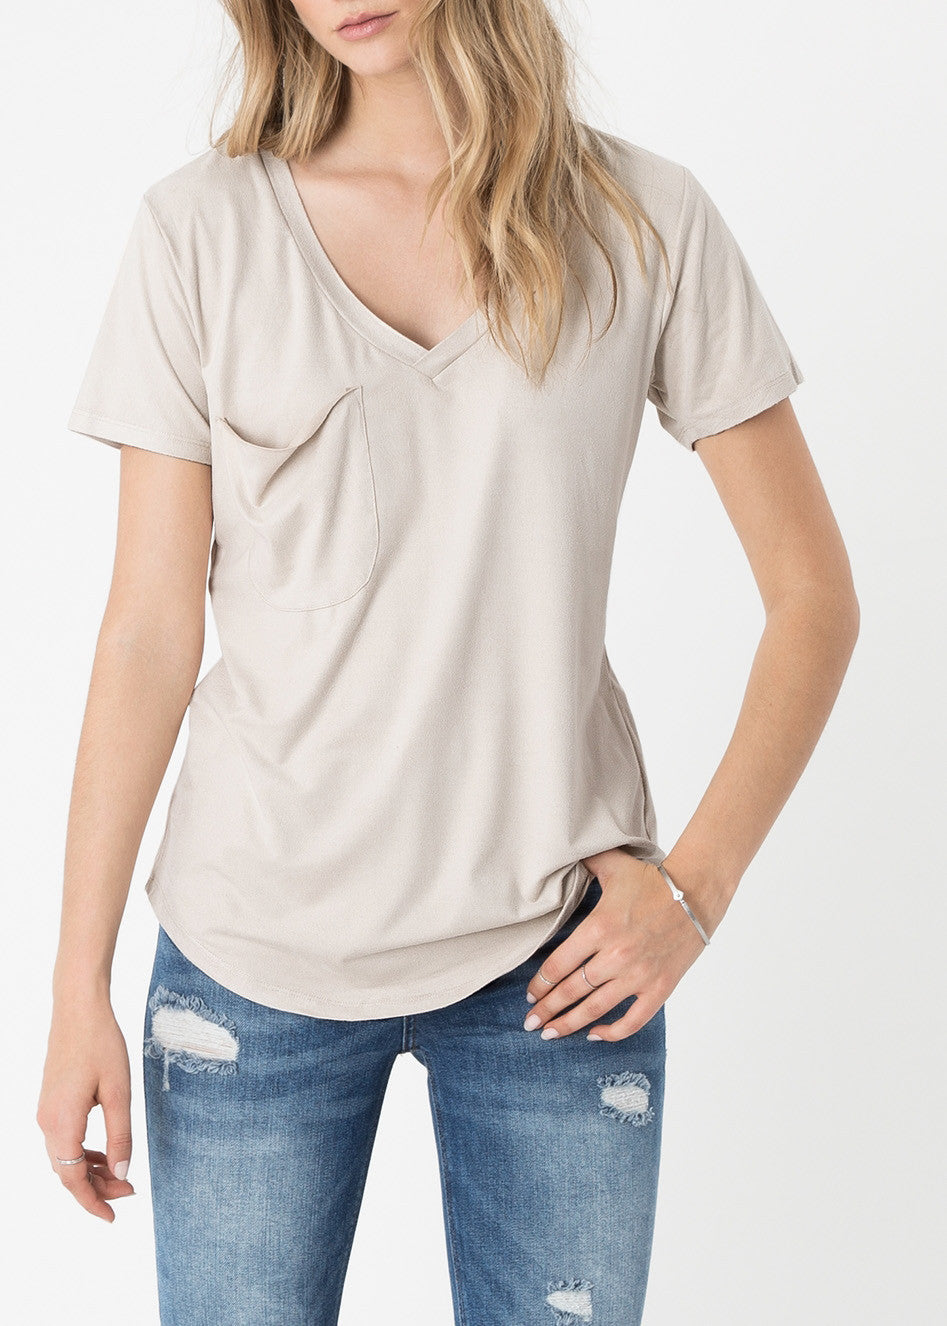 The Suede Pocket Tee - Ivory